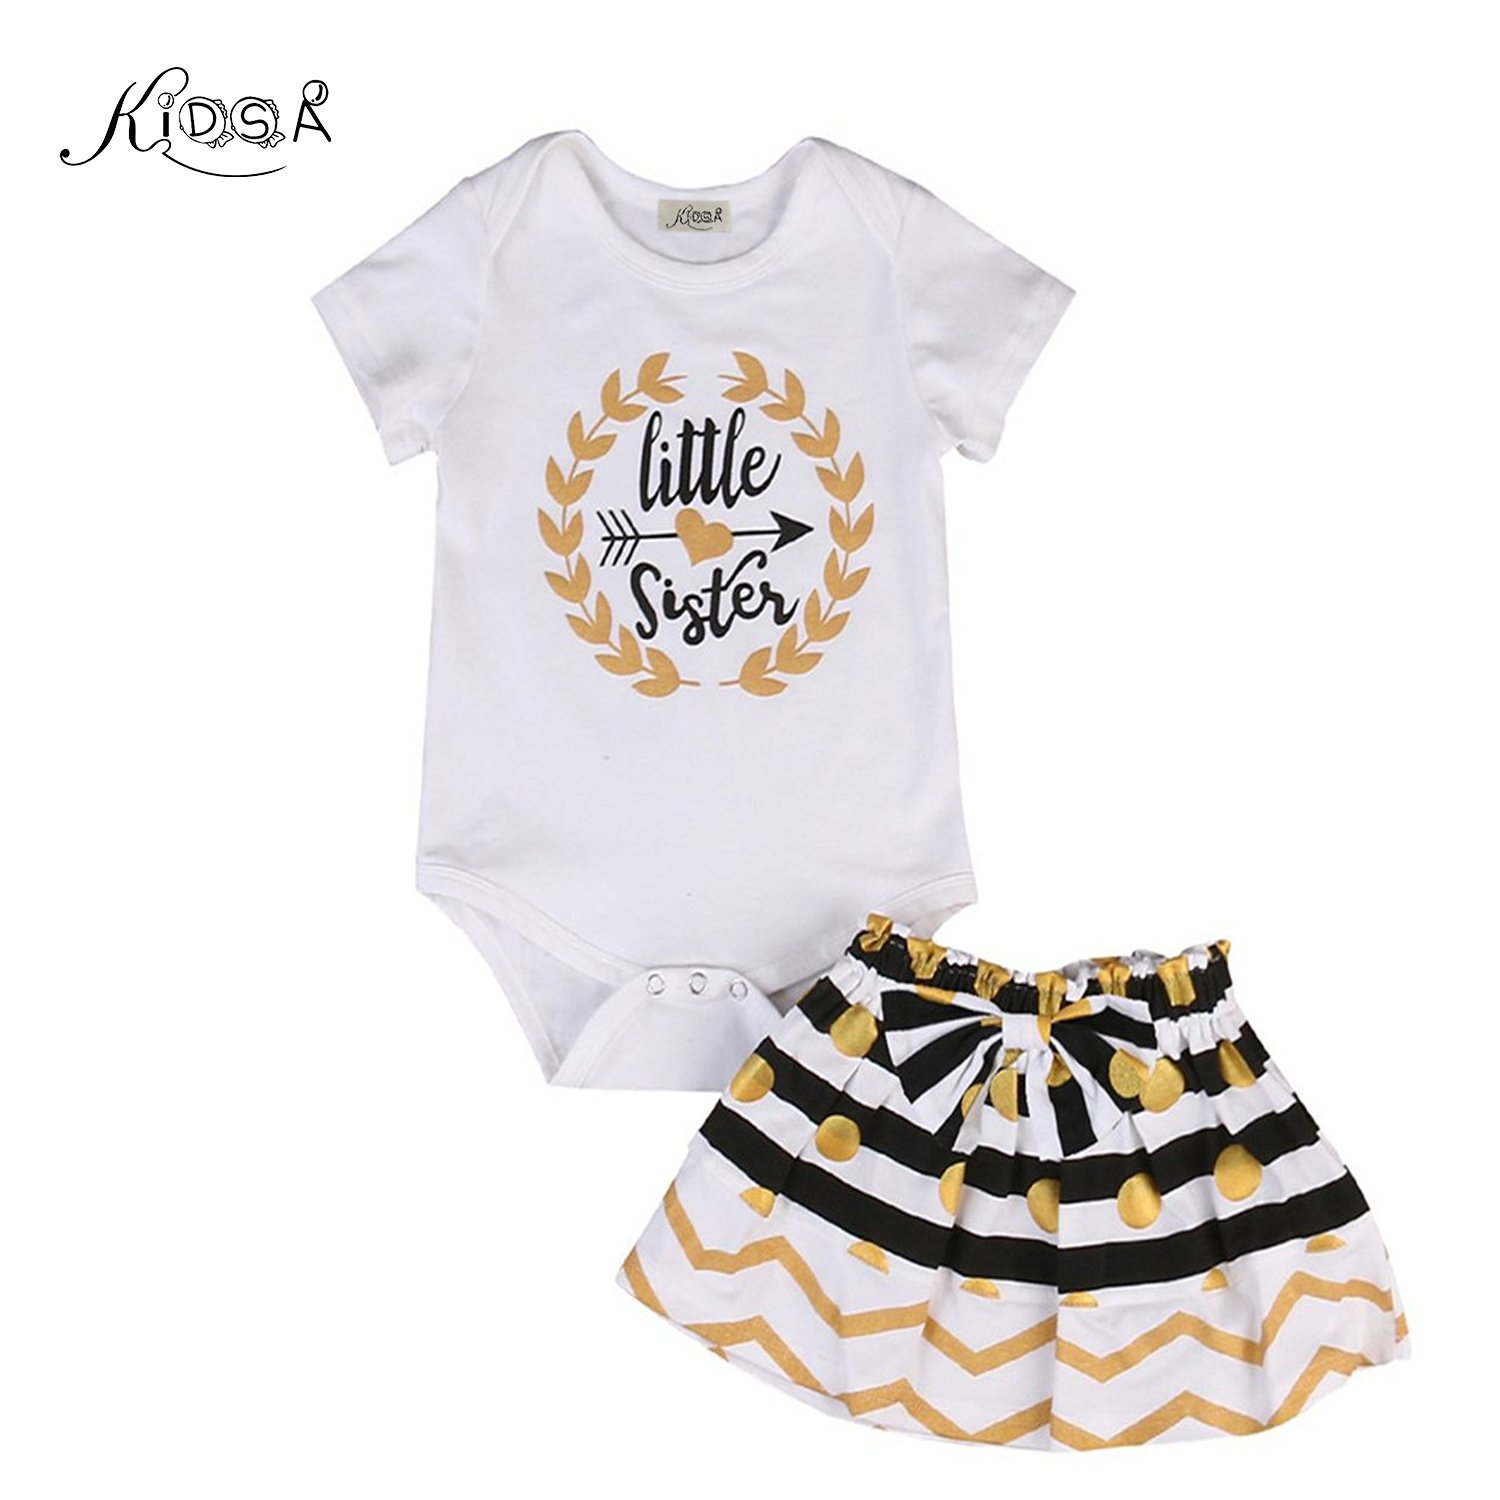 KIDSA 0-2T Little Sister & 2-7T Big Sister Matching Clothing Newborn Toddler Baby Little Girls Skirts Outfits Set